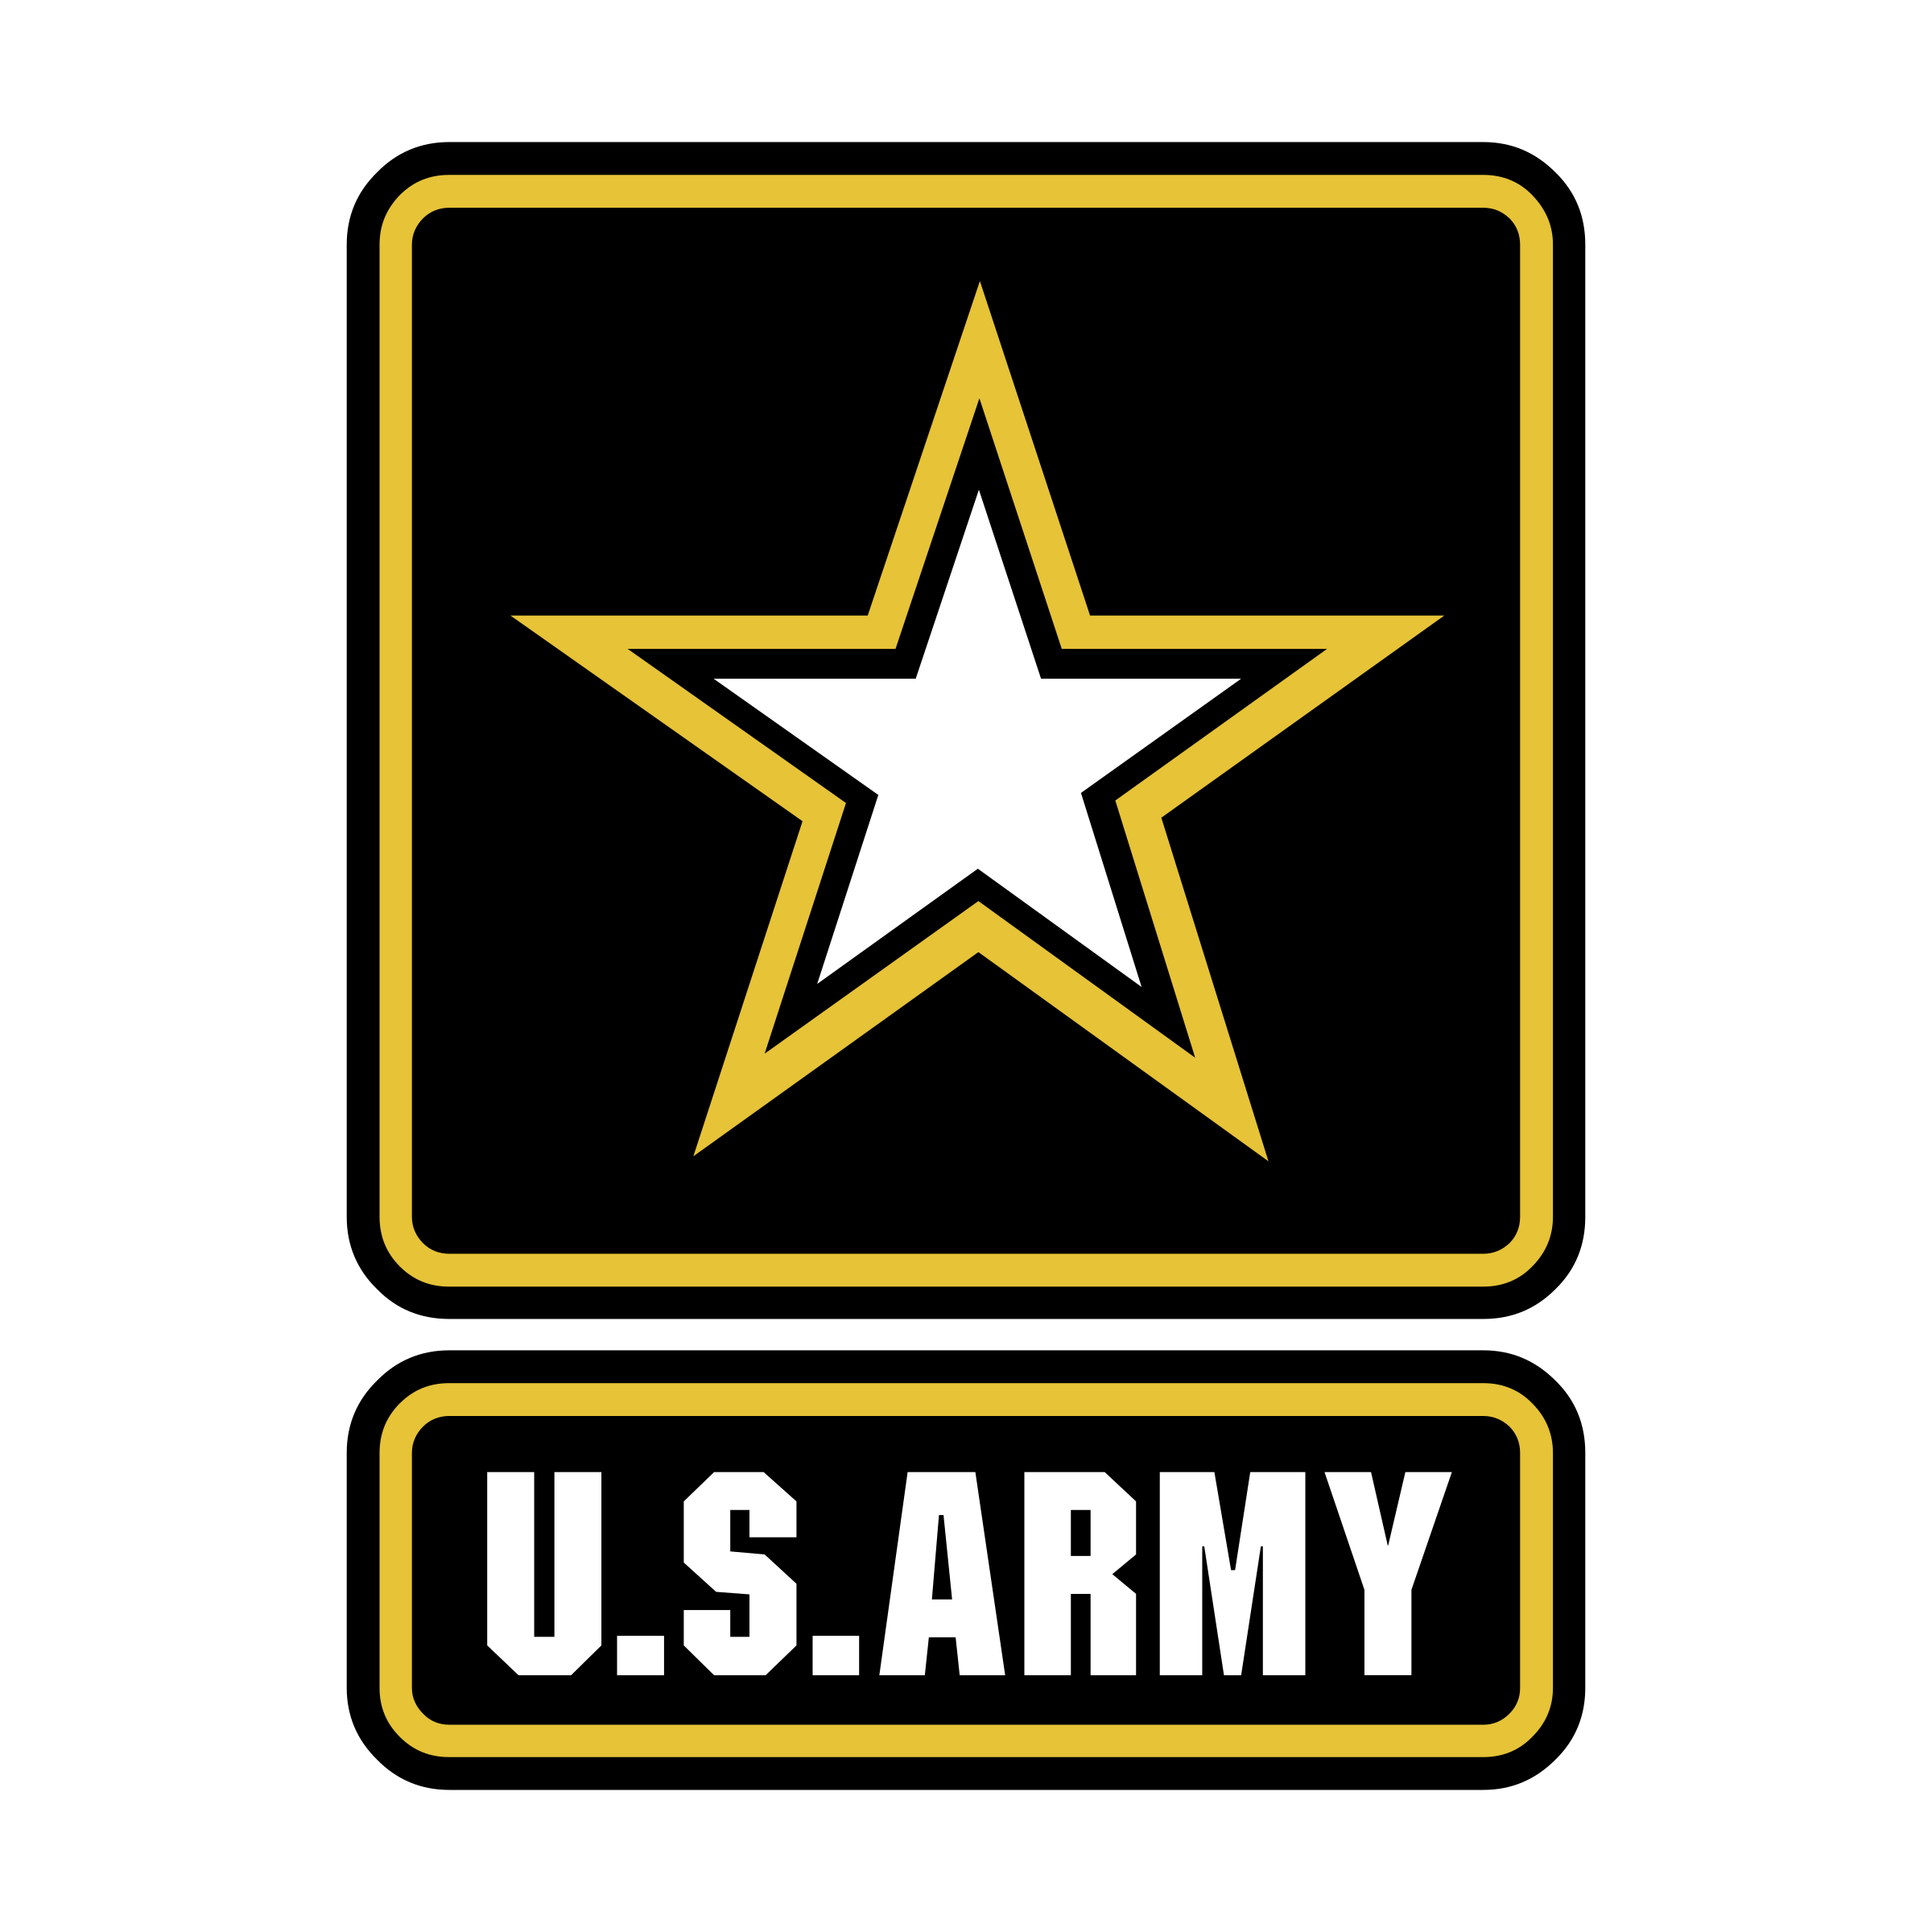 us army logo png transparent svg vector freebie supply rh freebiesupply com pakistan army logos pictures pakistan army logos pictures